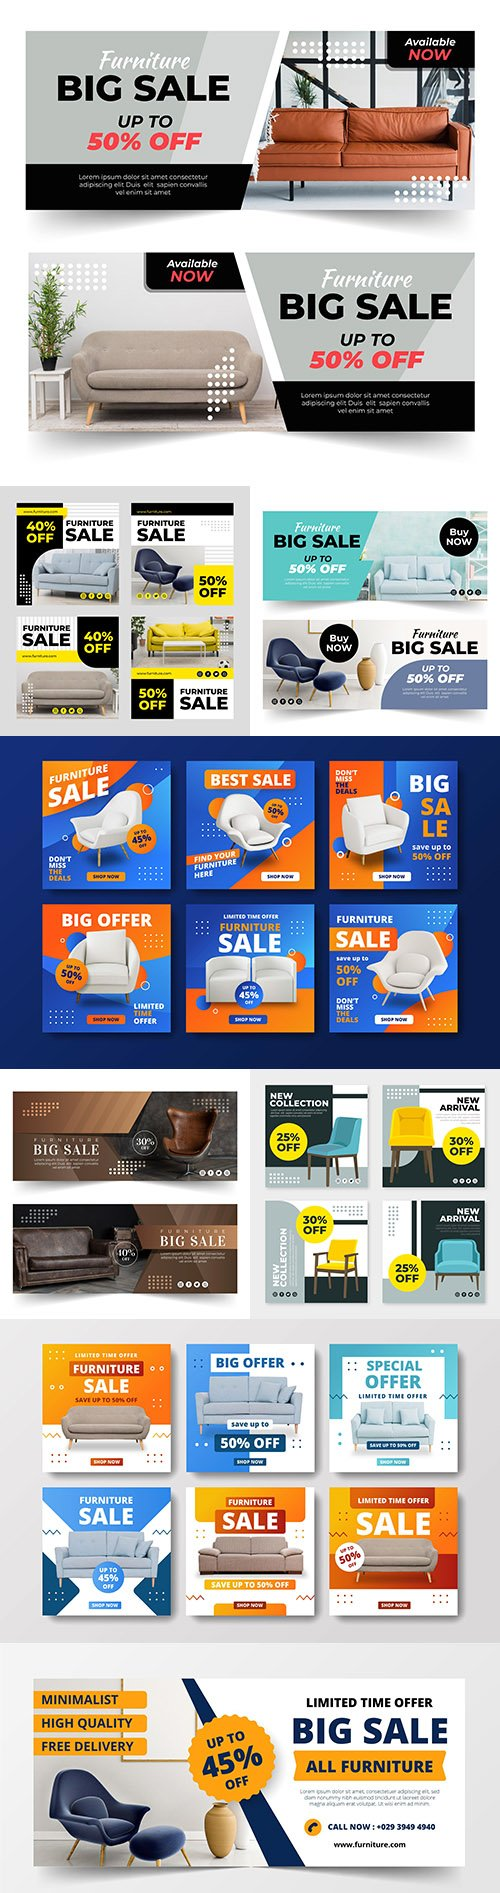 Furniture sales banner design and instagram posts